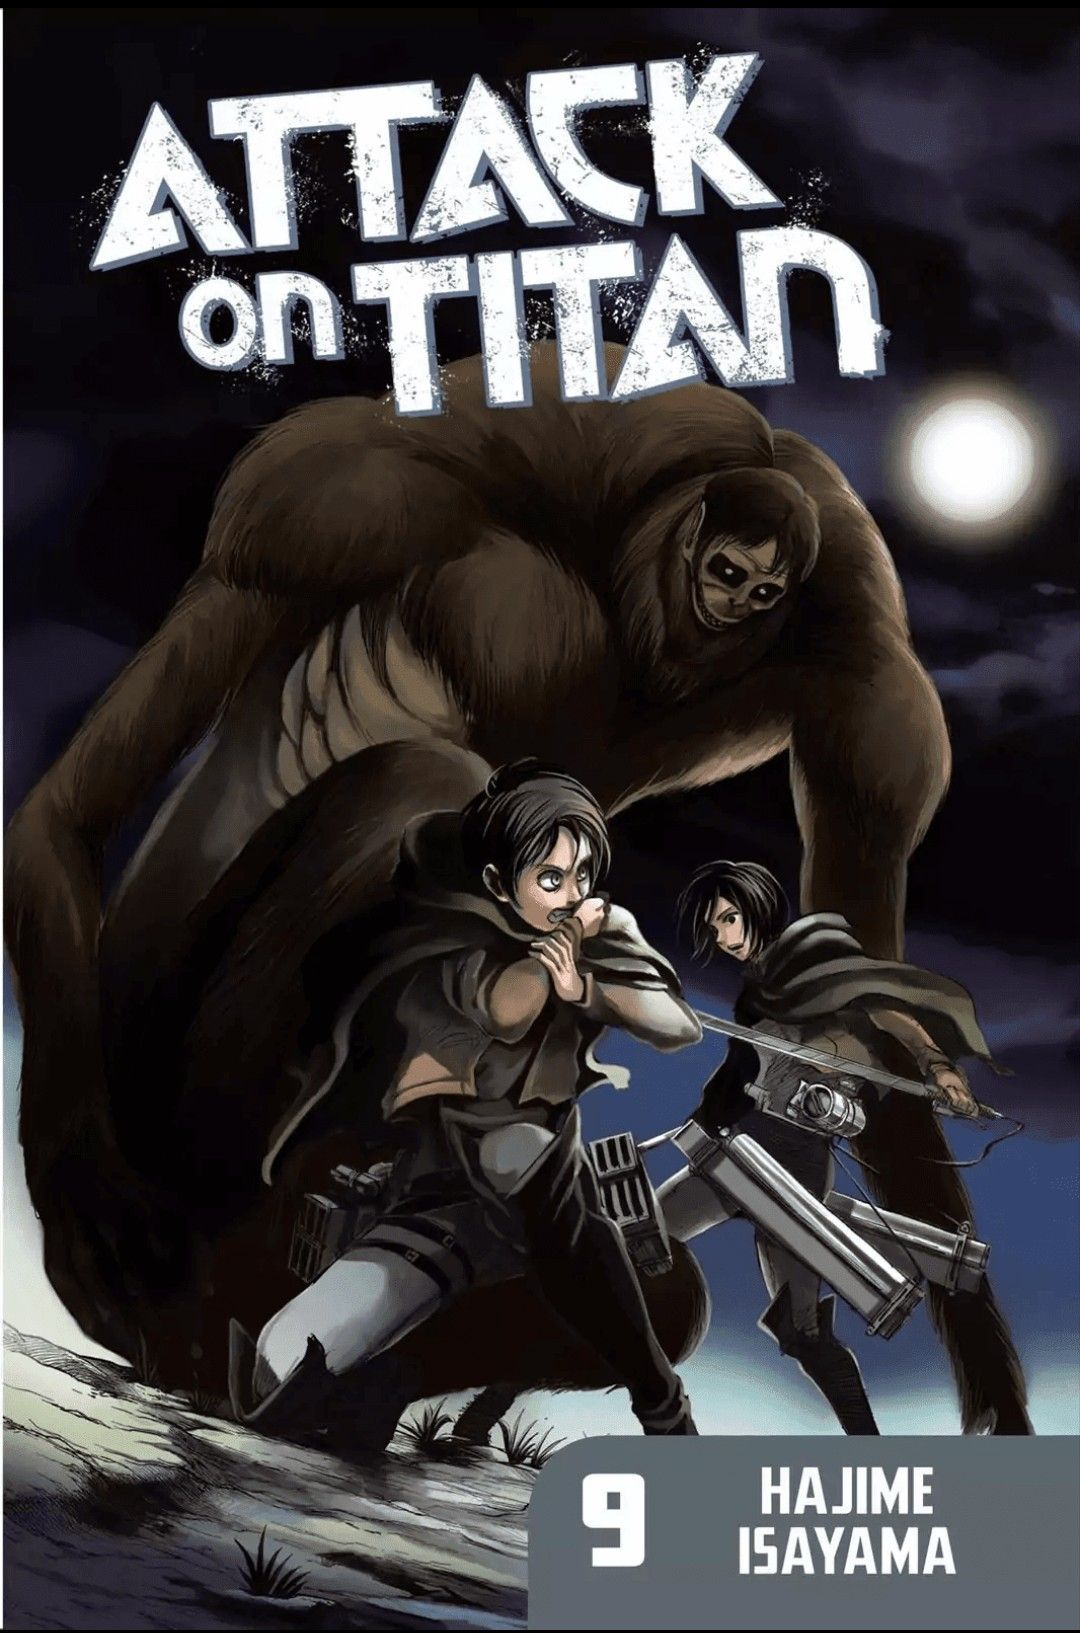 Manga Cover (With images) Attack on titan, Attack on